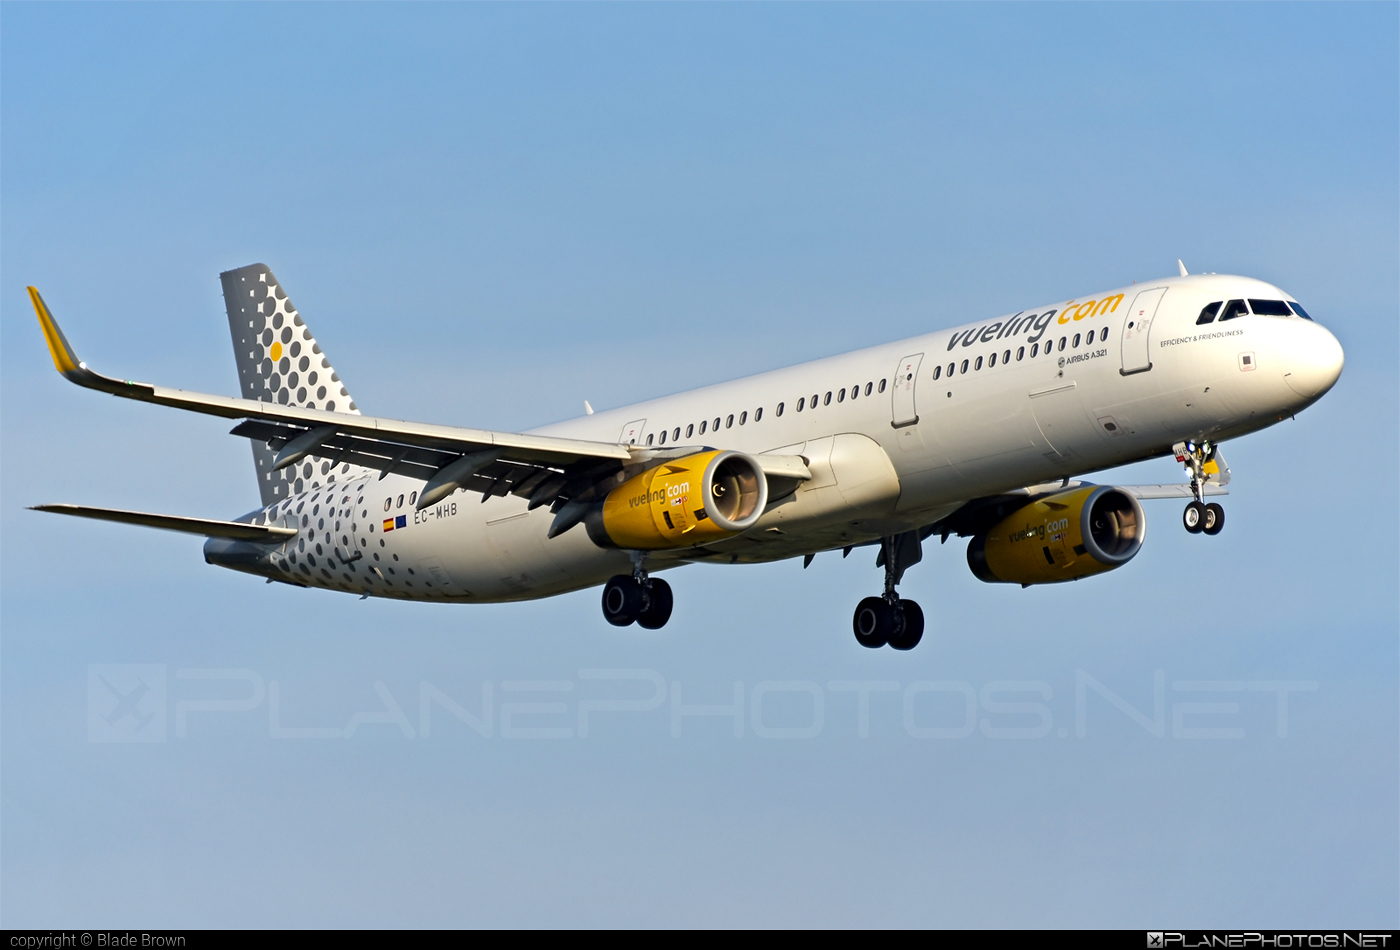 Airbus A321-231 - EC-MHB operated by Vueling Airlines #a320family #a321 #airbus #airbus321 #vueling #vuelingairlines